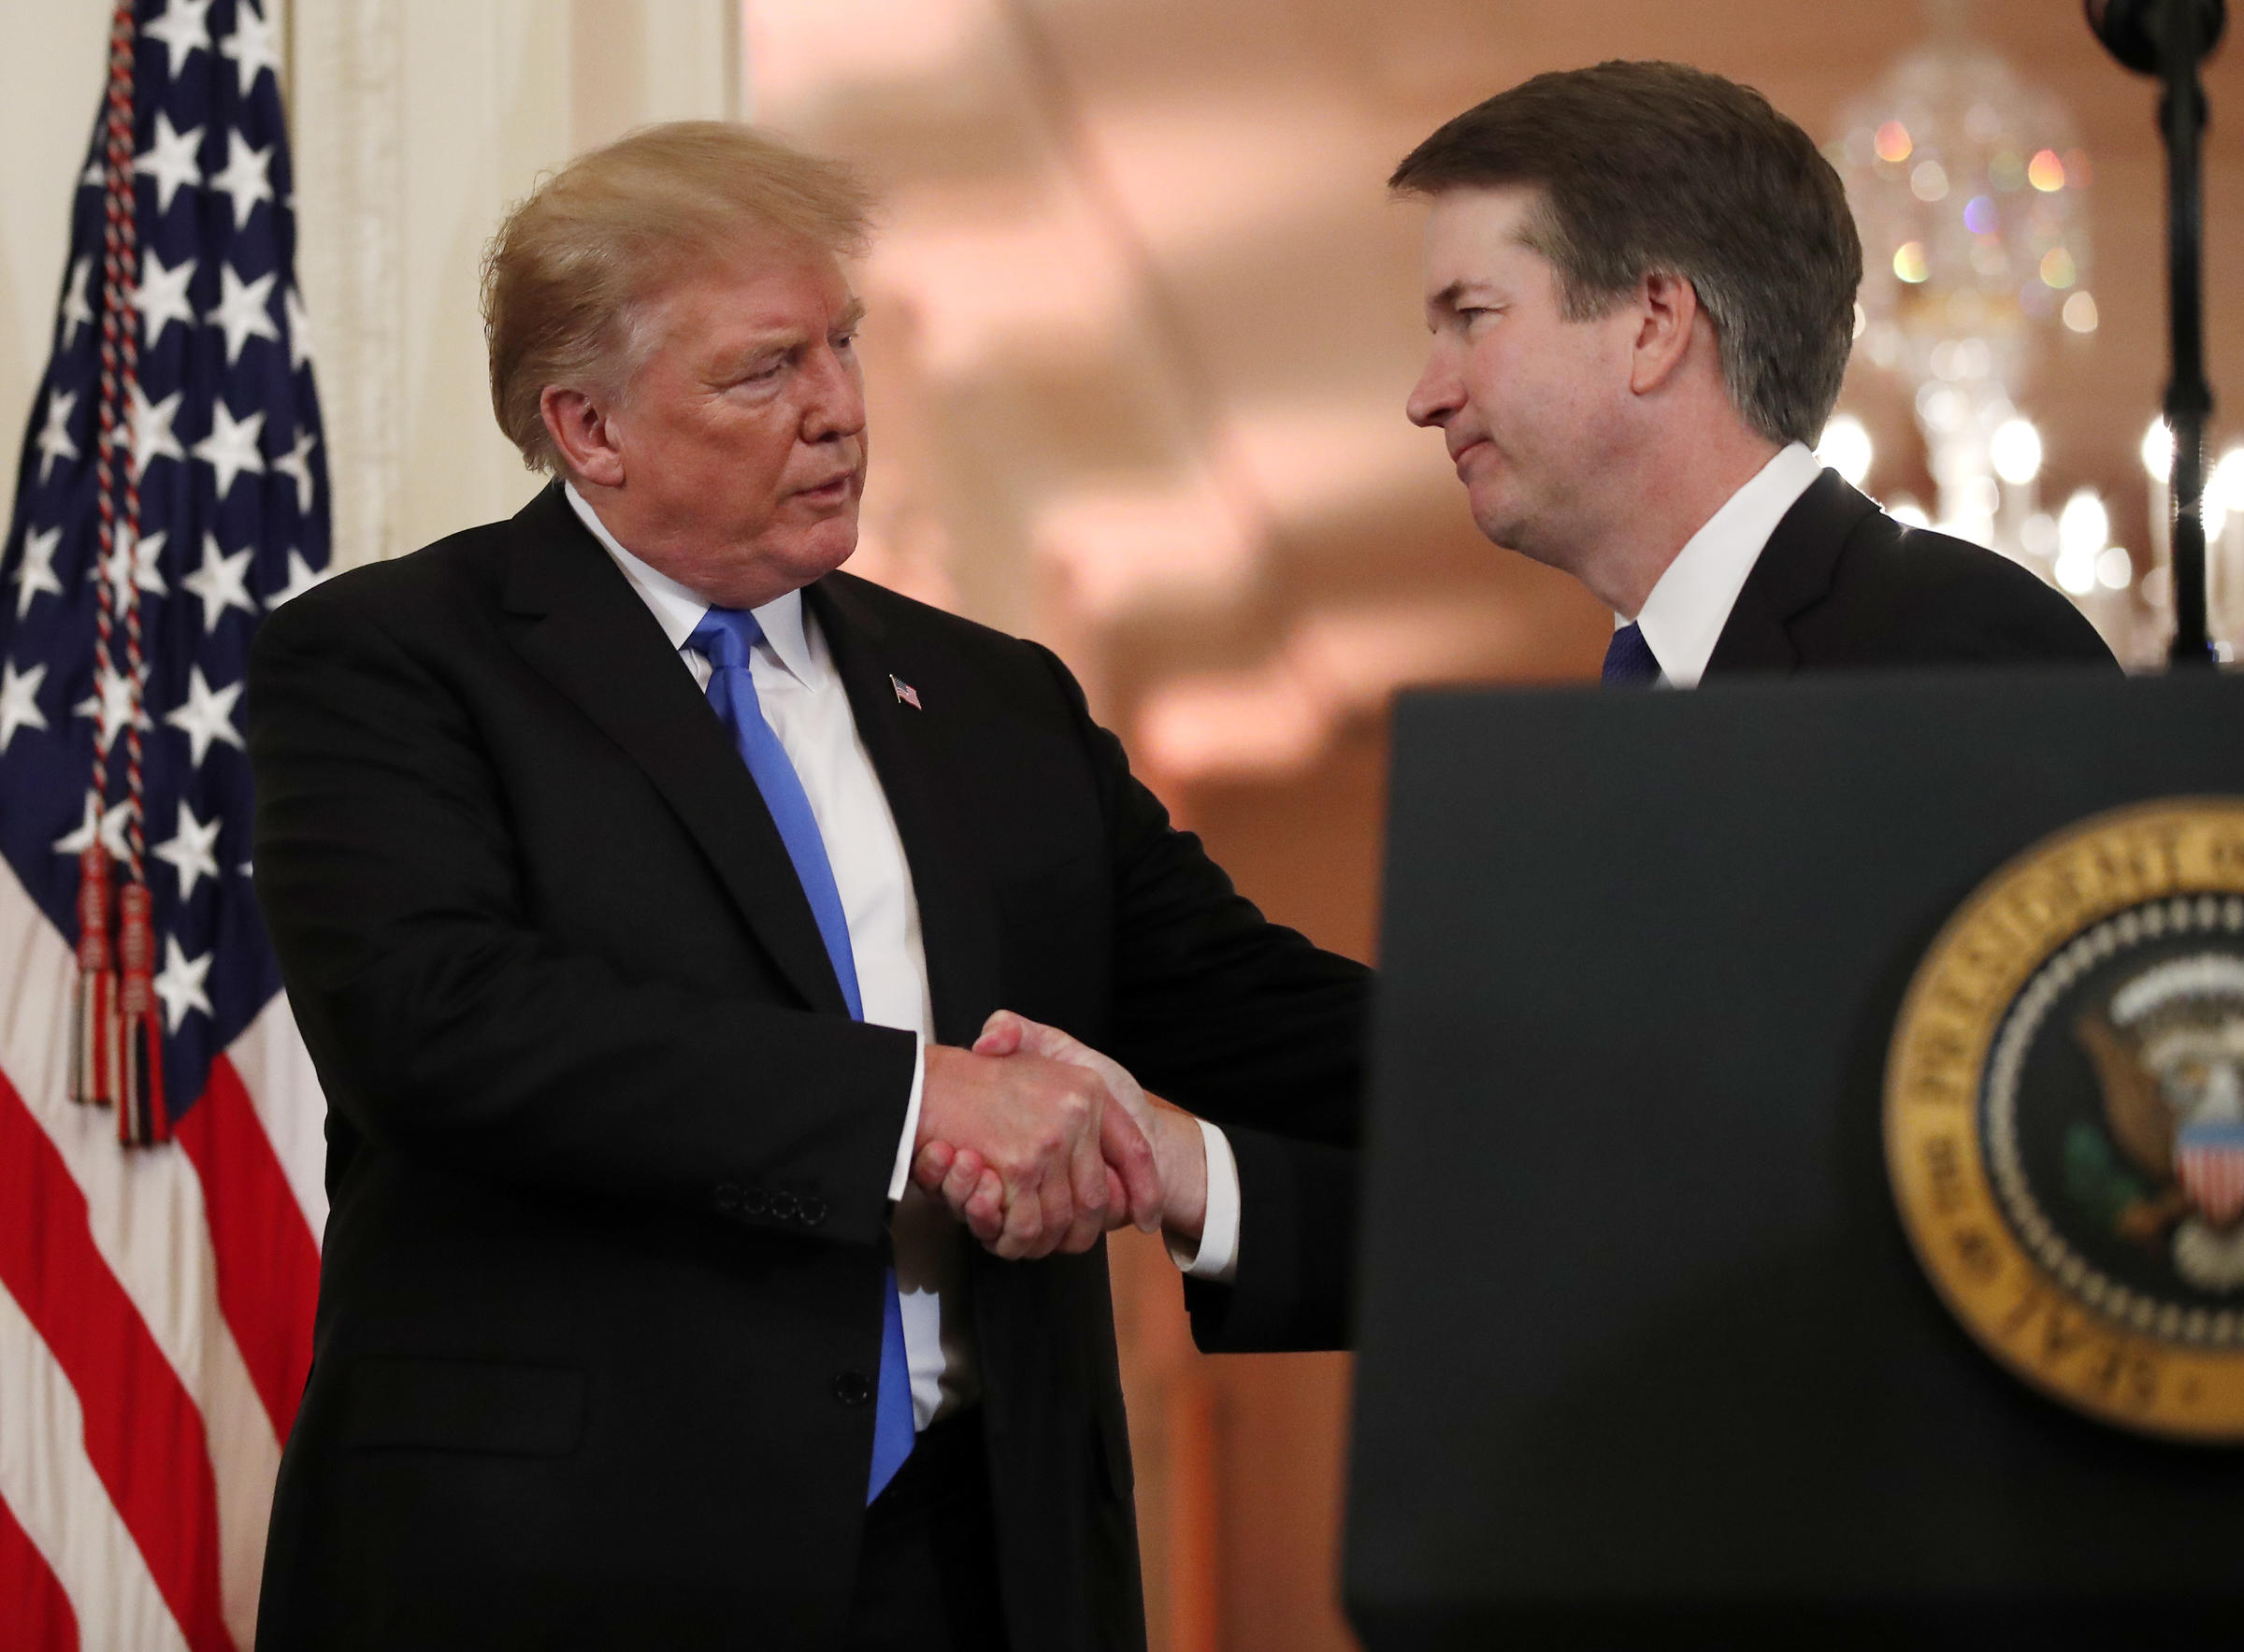 President Donald Trump shakes hands with Judge Brett Kavanaugh his Supreme Court nominee, in the East Room of the White House, Monday, July 9, 2018, in Washington. (0